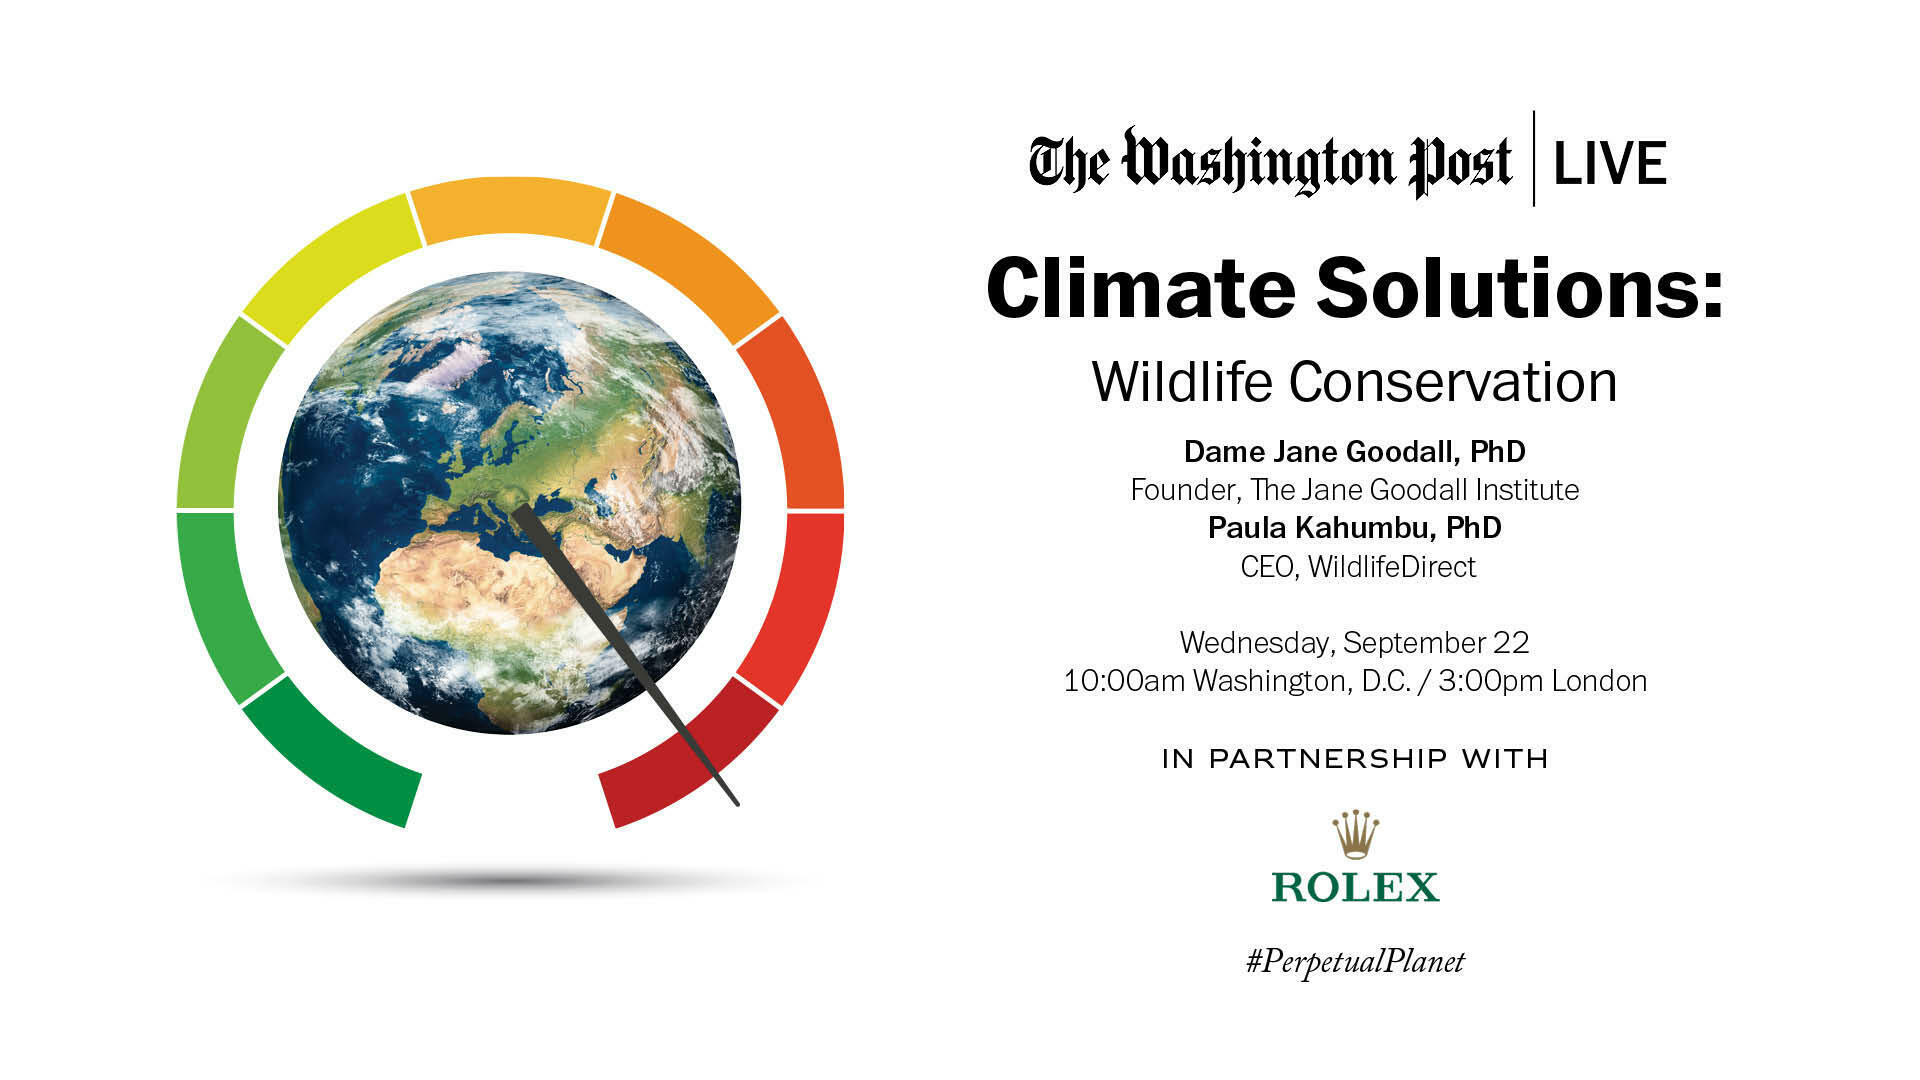 Climate Solutions: Wildlife Conservation - Washington Post Live